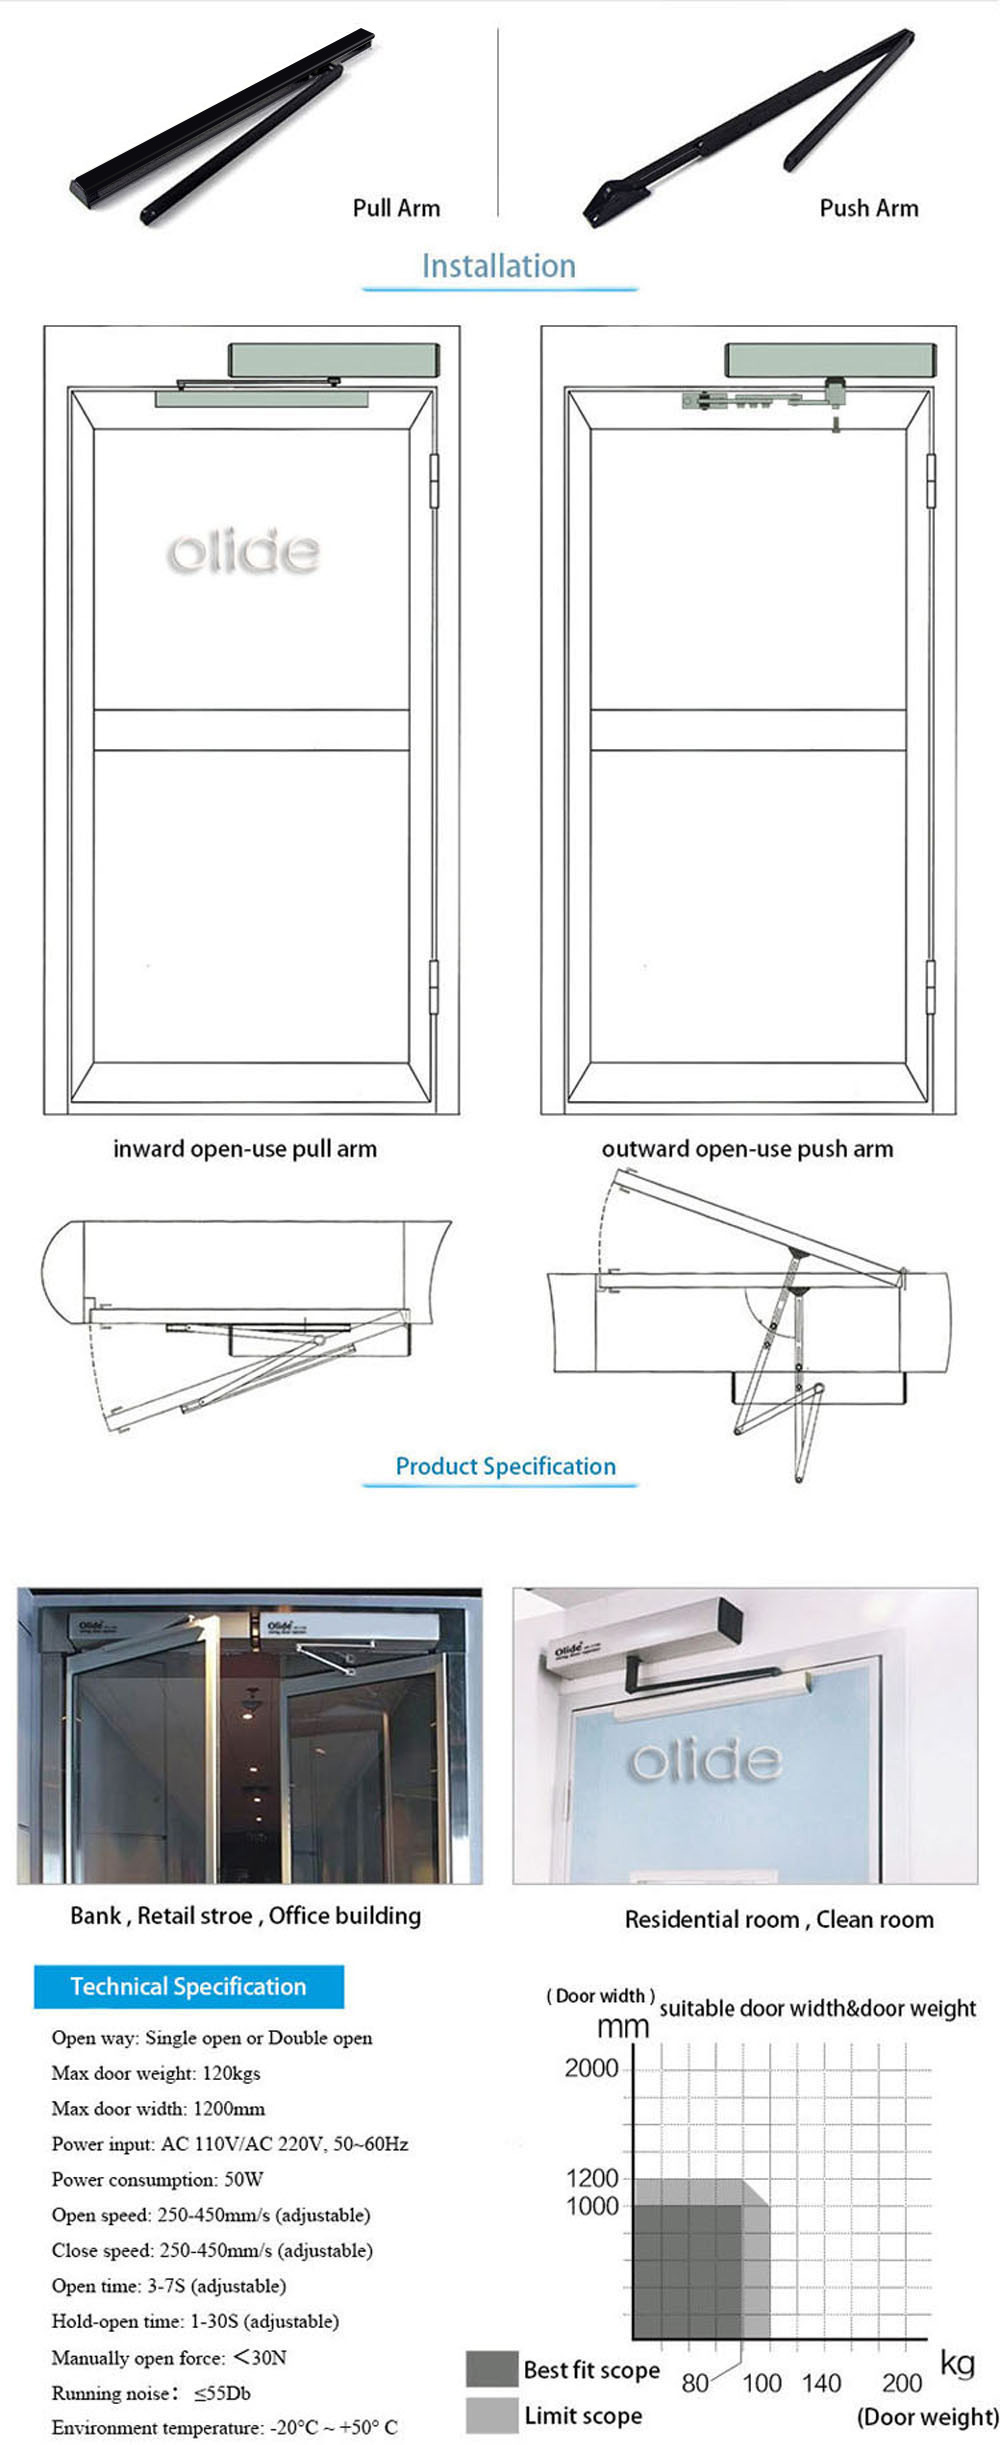 Residential Swing Door Operator Automatic,Handicap Swing Door System on handicap door opening measurements, handicap door switch access, handicap door width, handicap entrance buttons, handicap door remote,